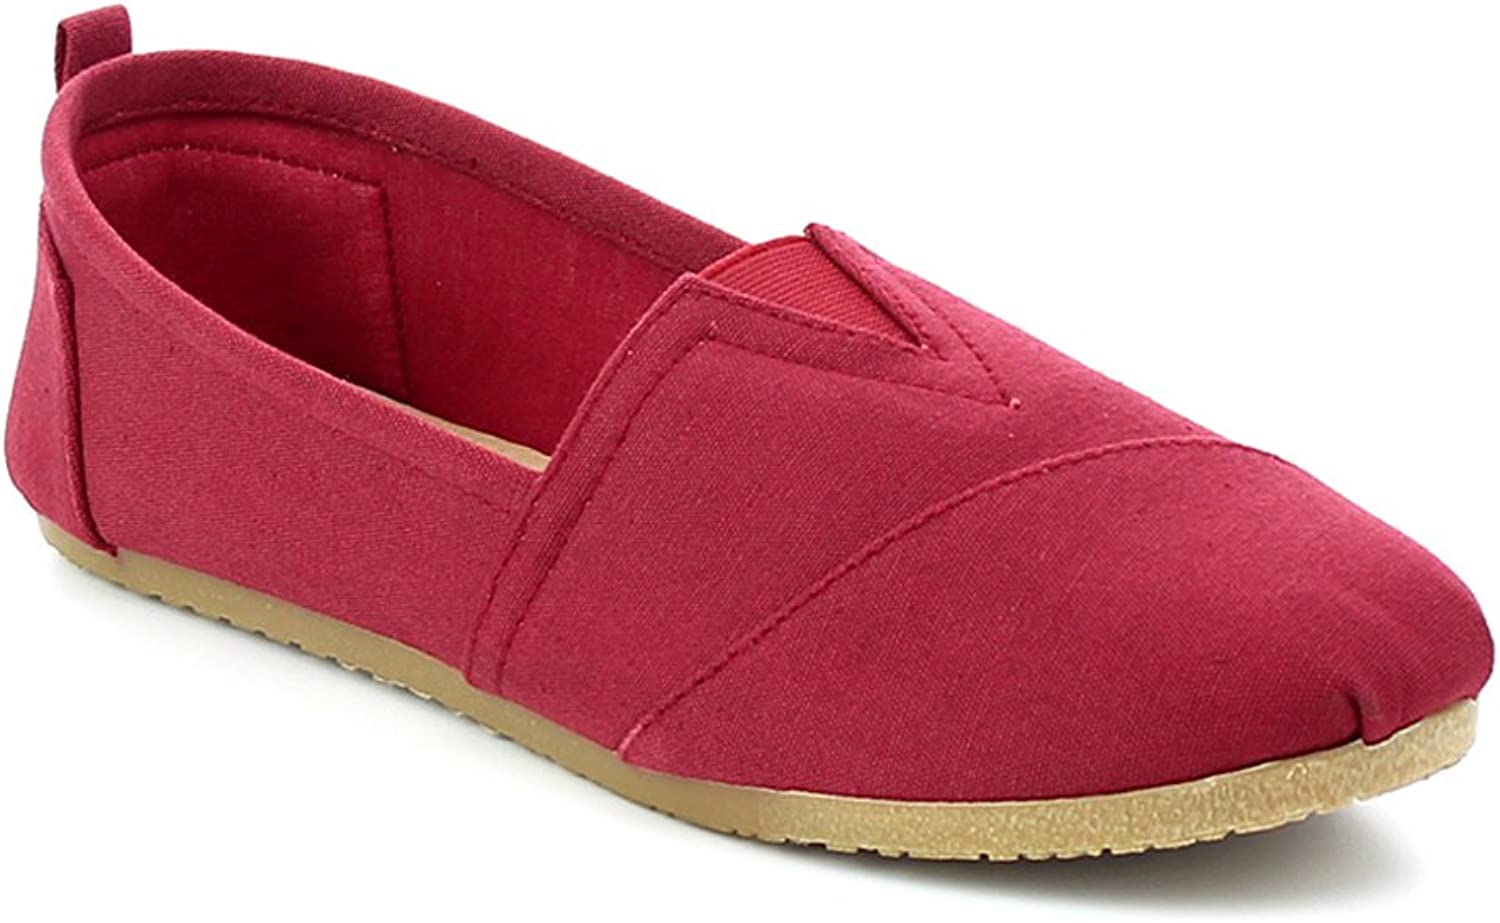 WestCoast Nina-02 Women's Classics Perforated Casual Flats Loafer shoes